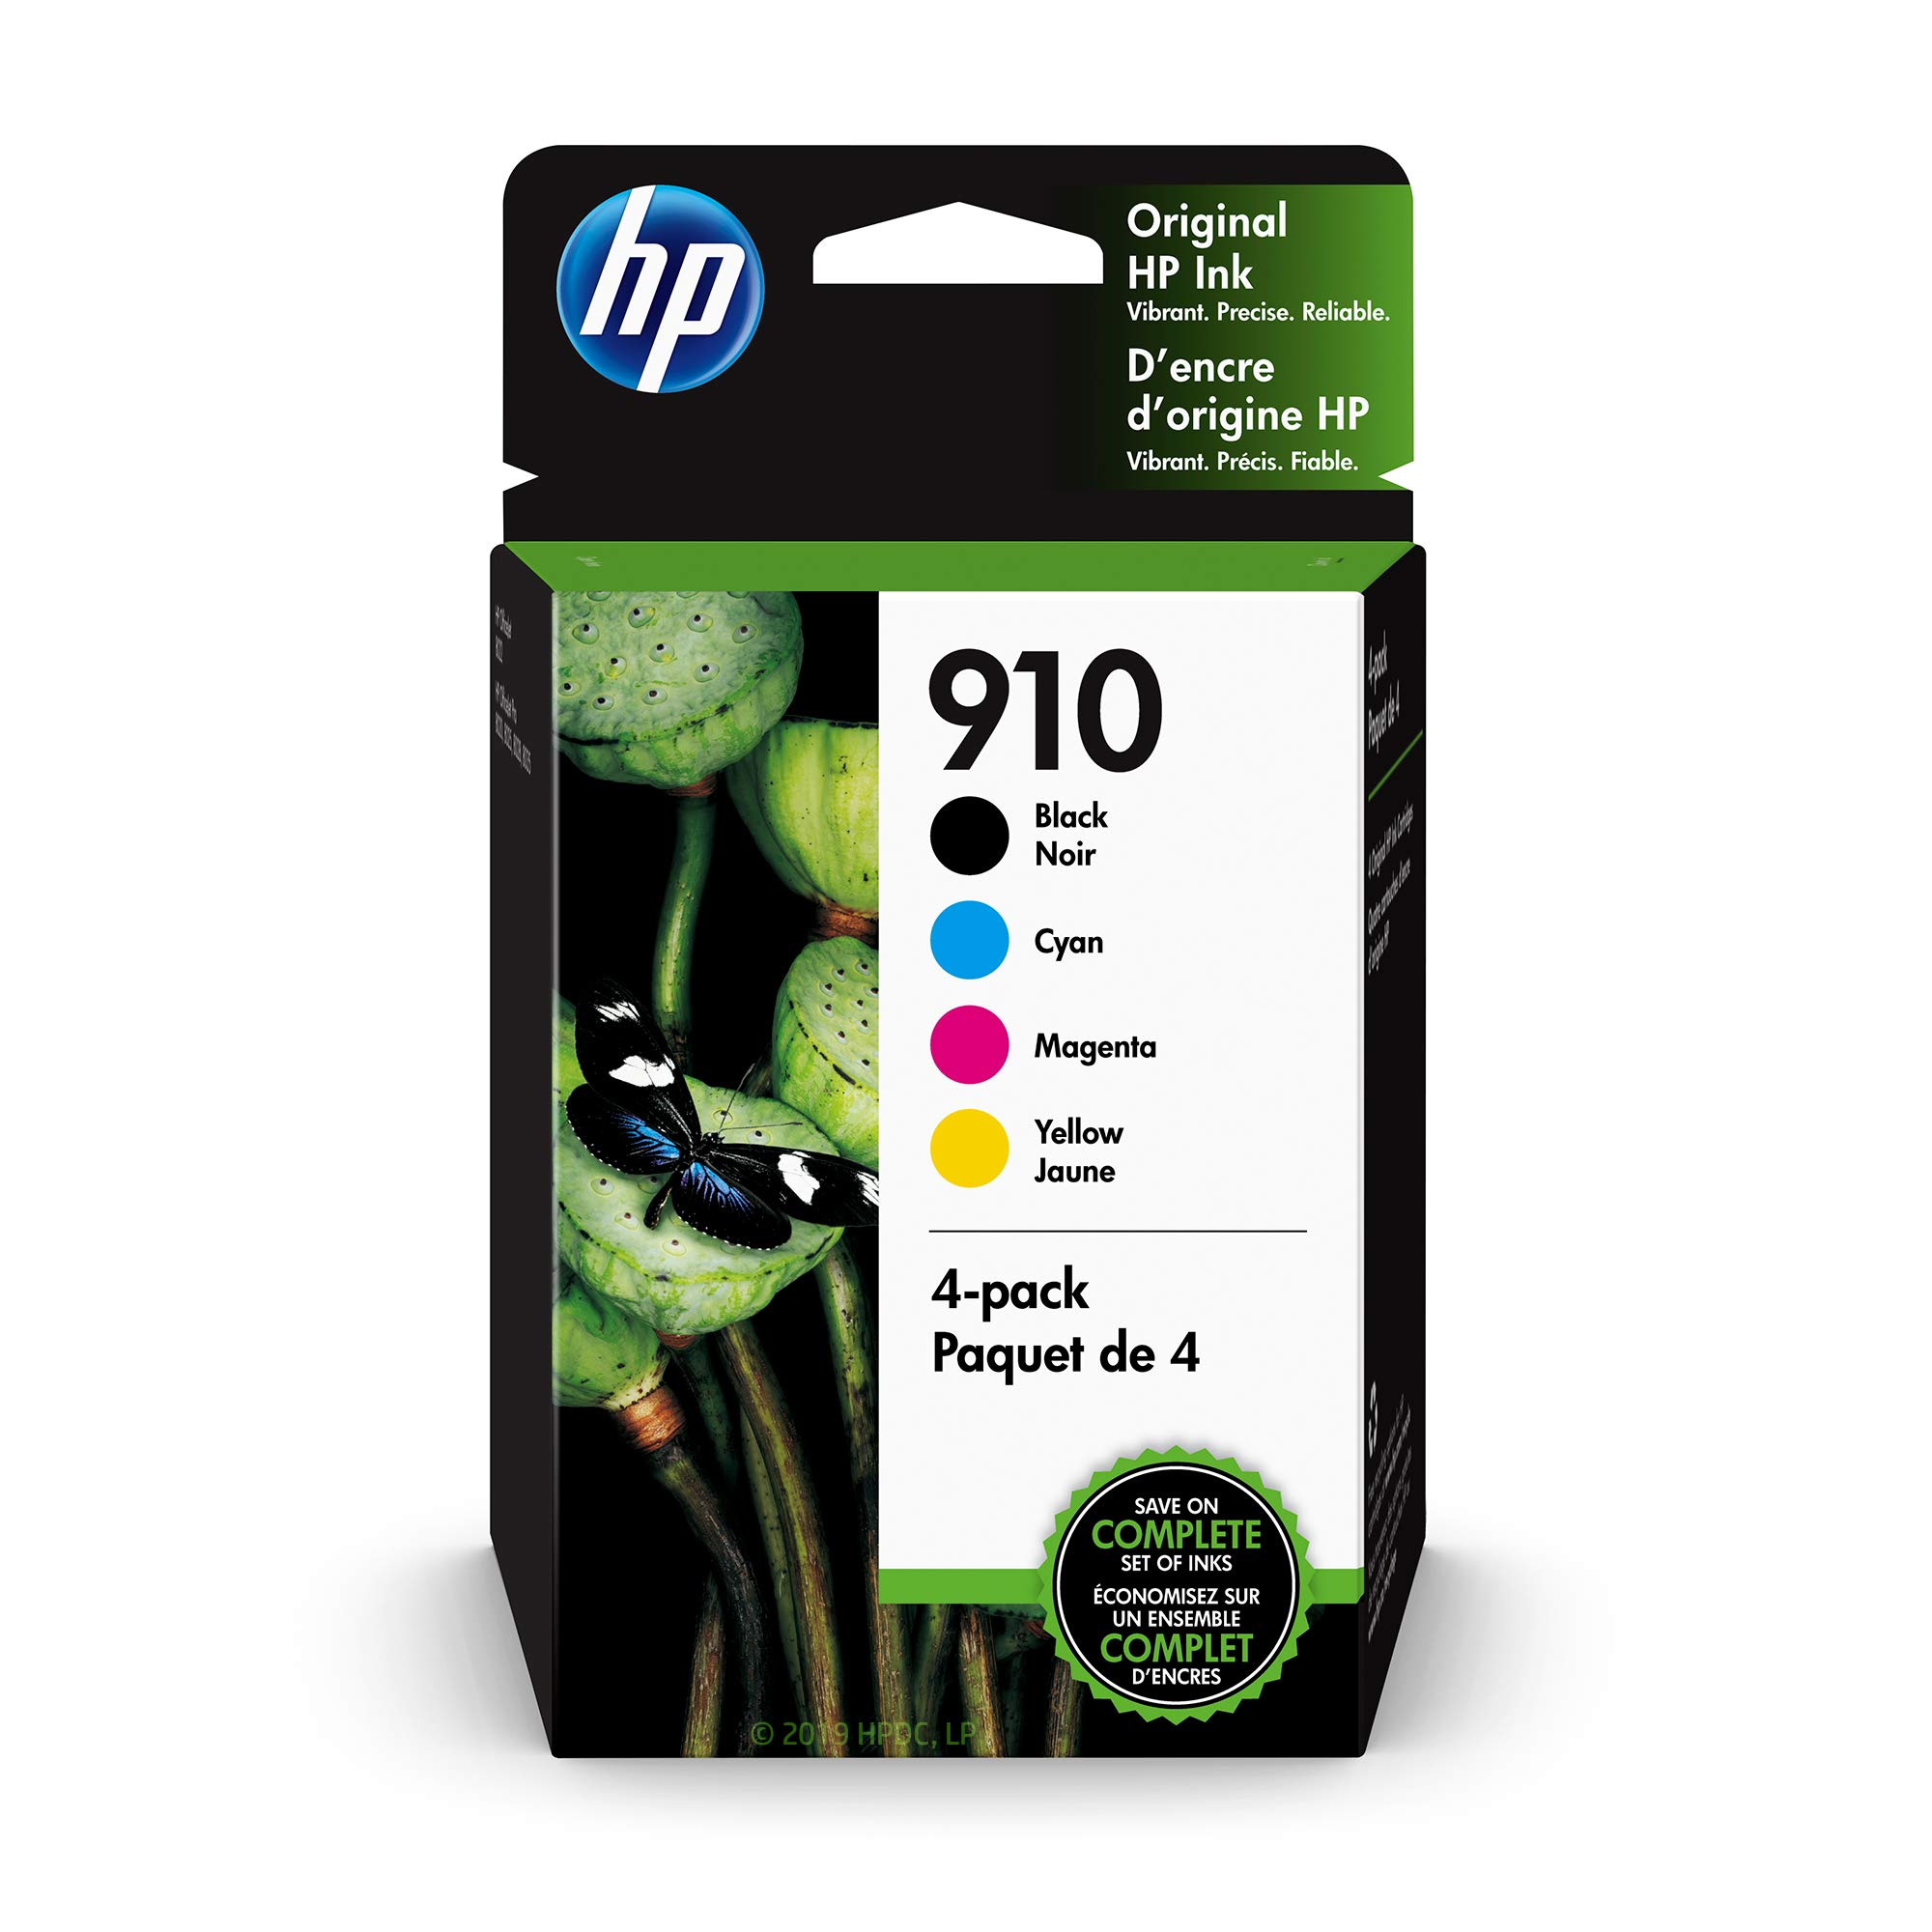 HP 910 | 4 Ink Cartridges | Black, Cyan, Magenta, Yellow | 3YL61AN, 3YL58AN, 3YL59AN, 3YL60AN by HP